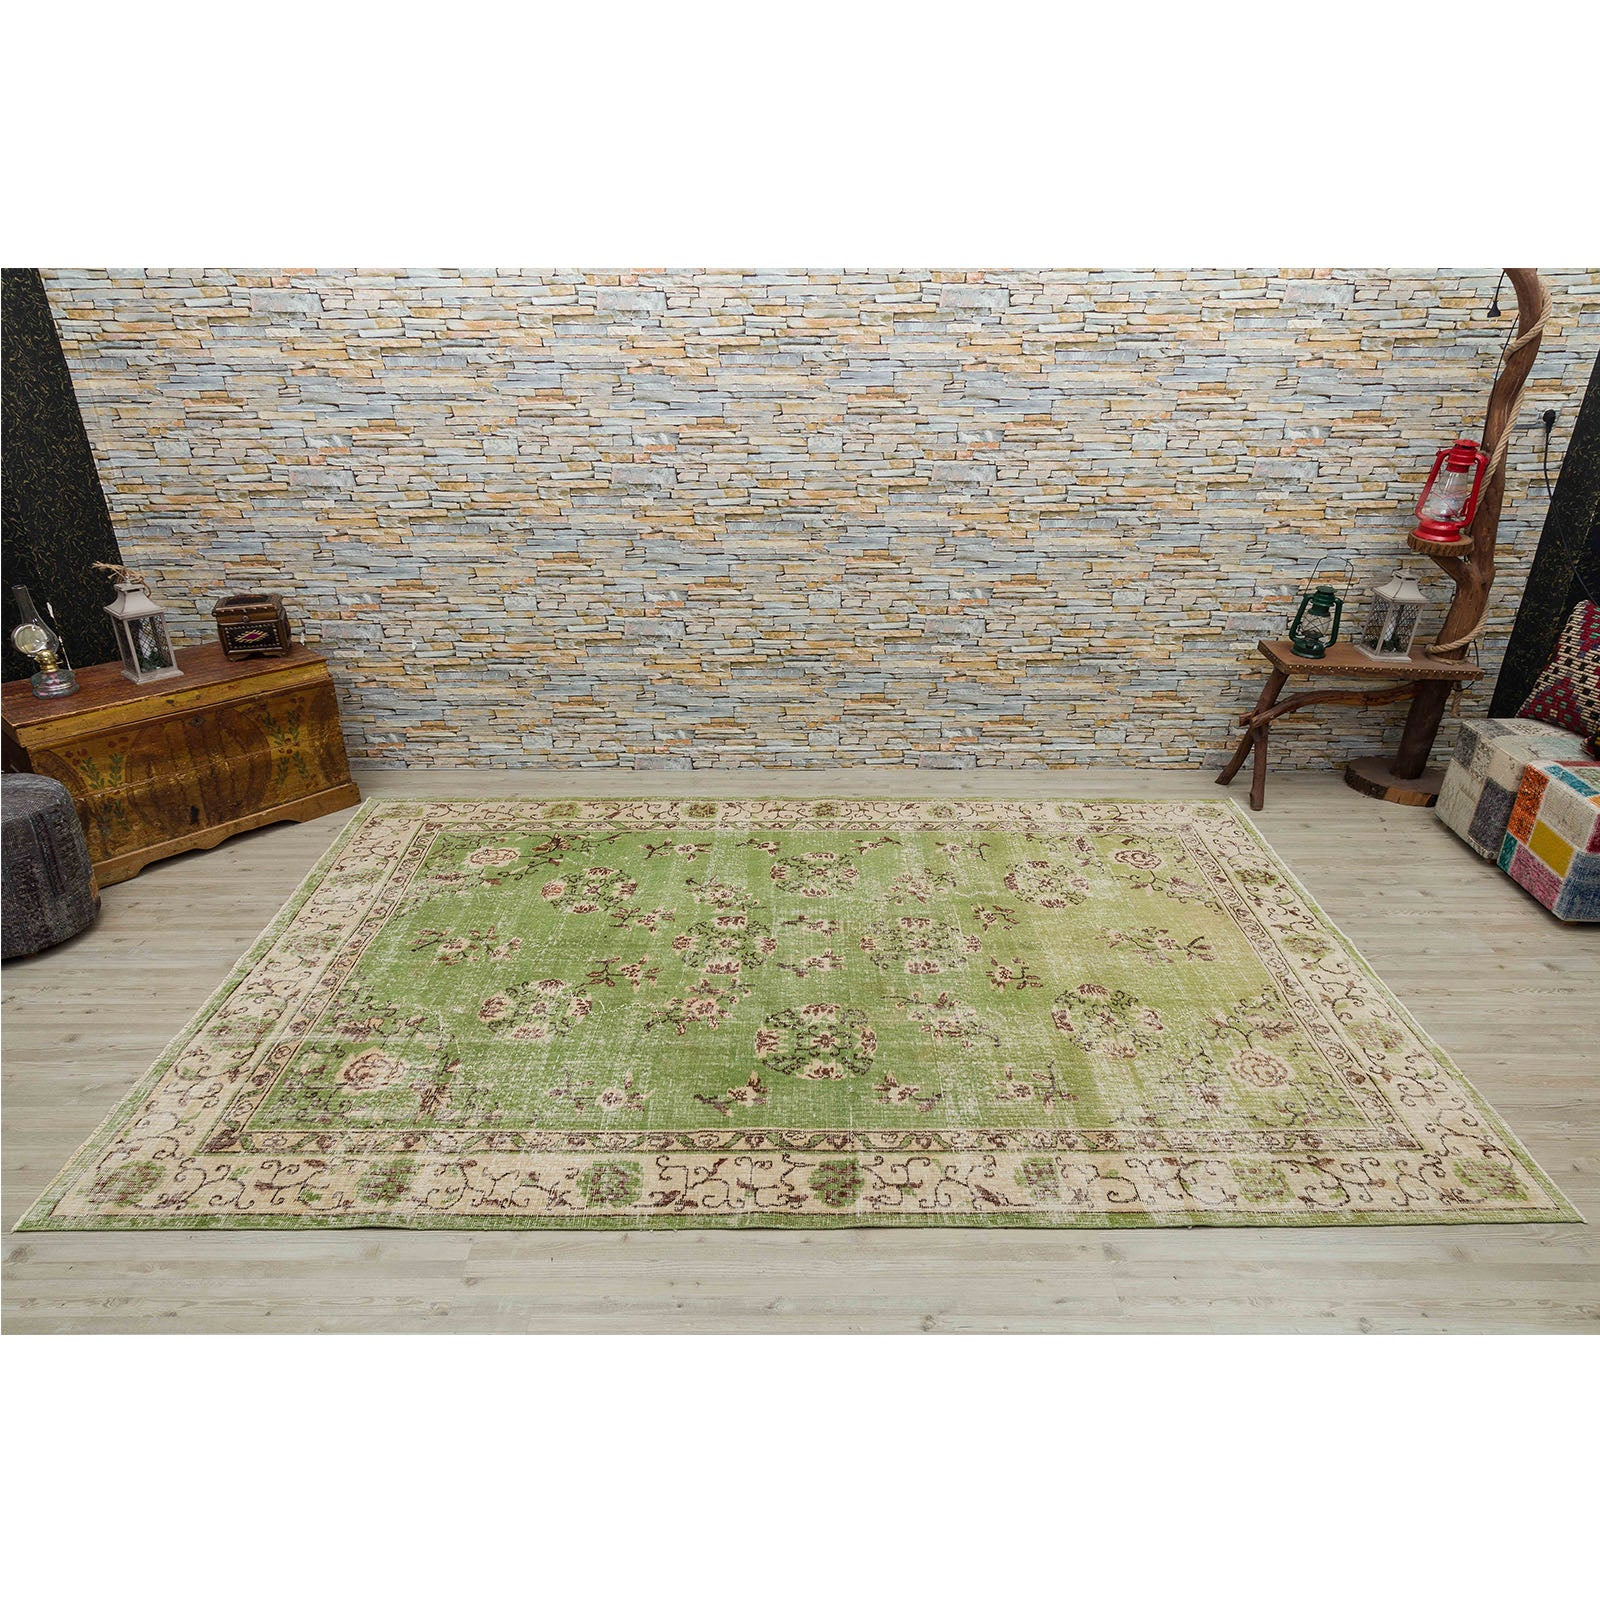 Hali 197X309  CM Bursa Handmade over dyed rug  2524